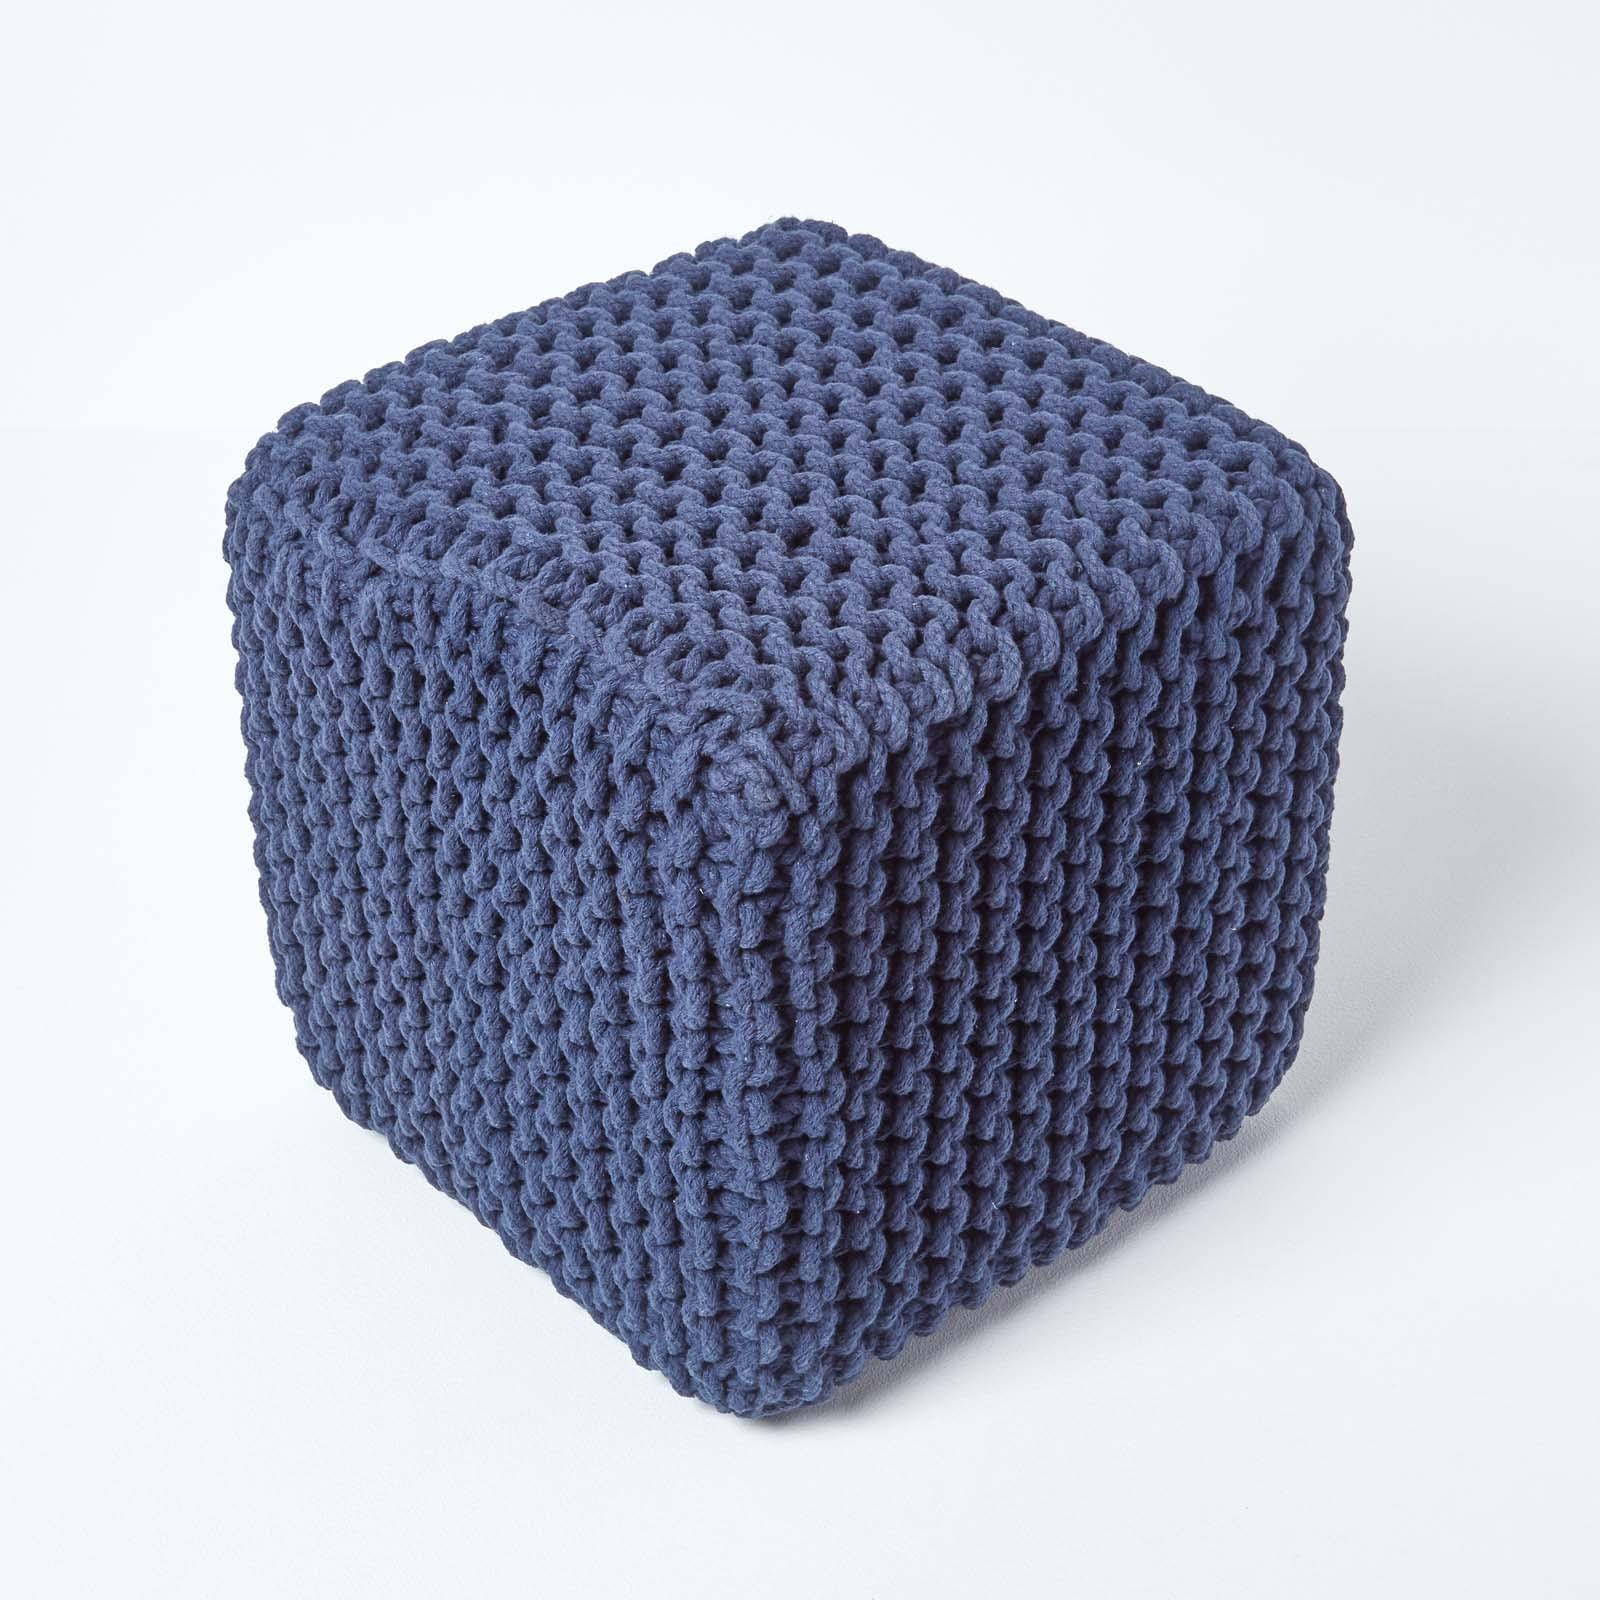 Hand-Knitted-100-Cotton-Pouffes-Round-Sphere-Or-Cube-Square-Chunky-Footstools thumbnail 111